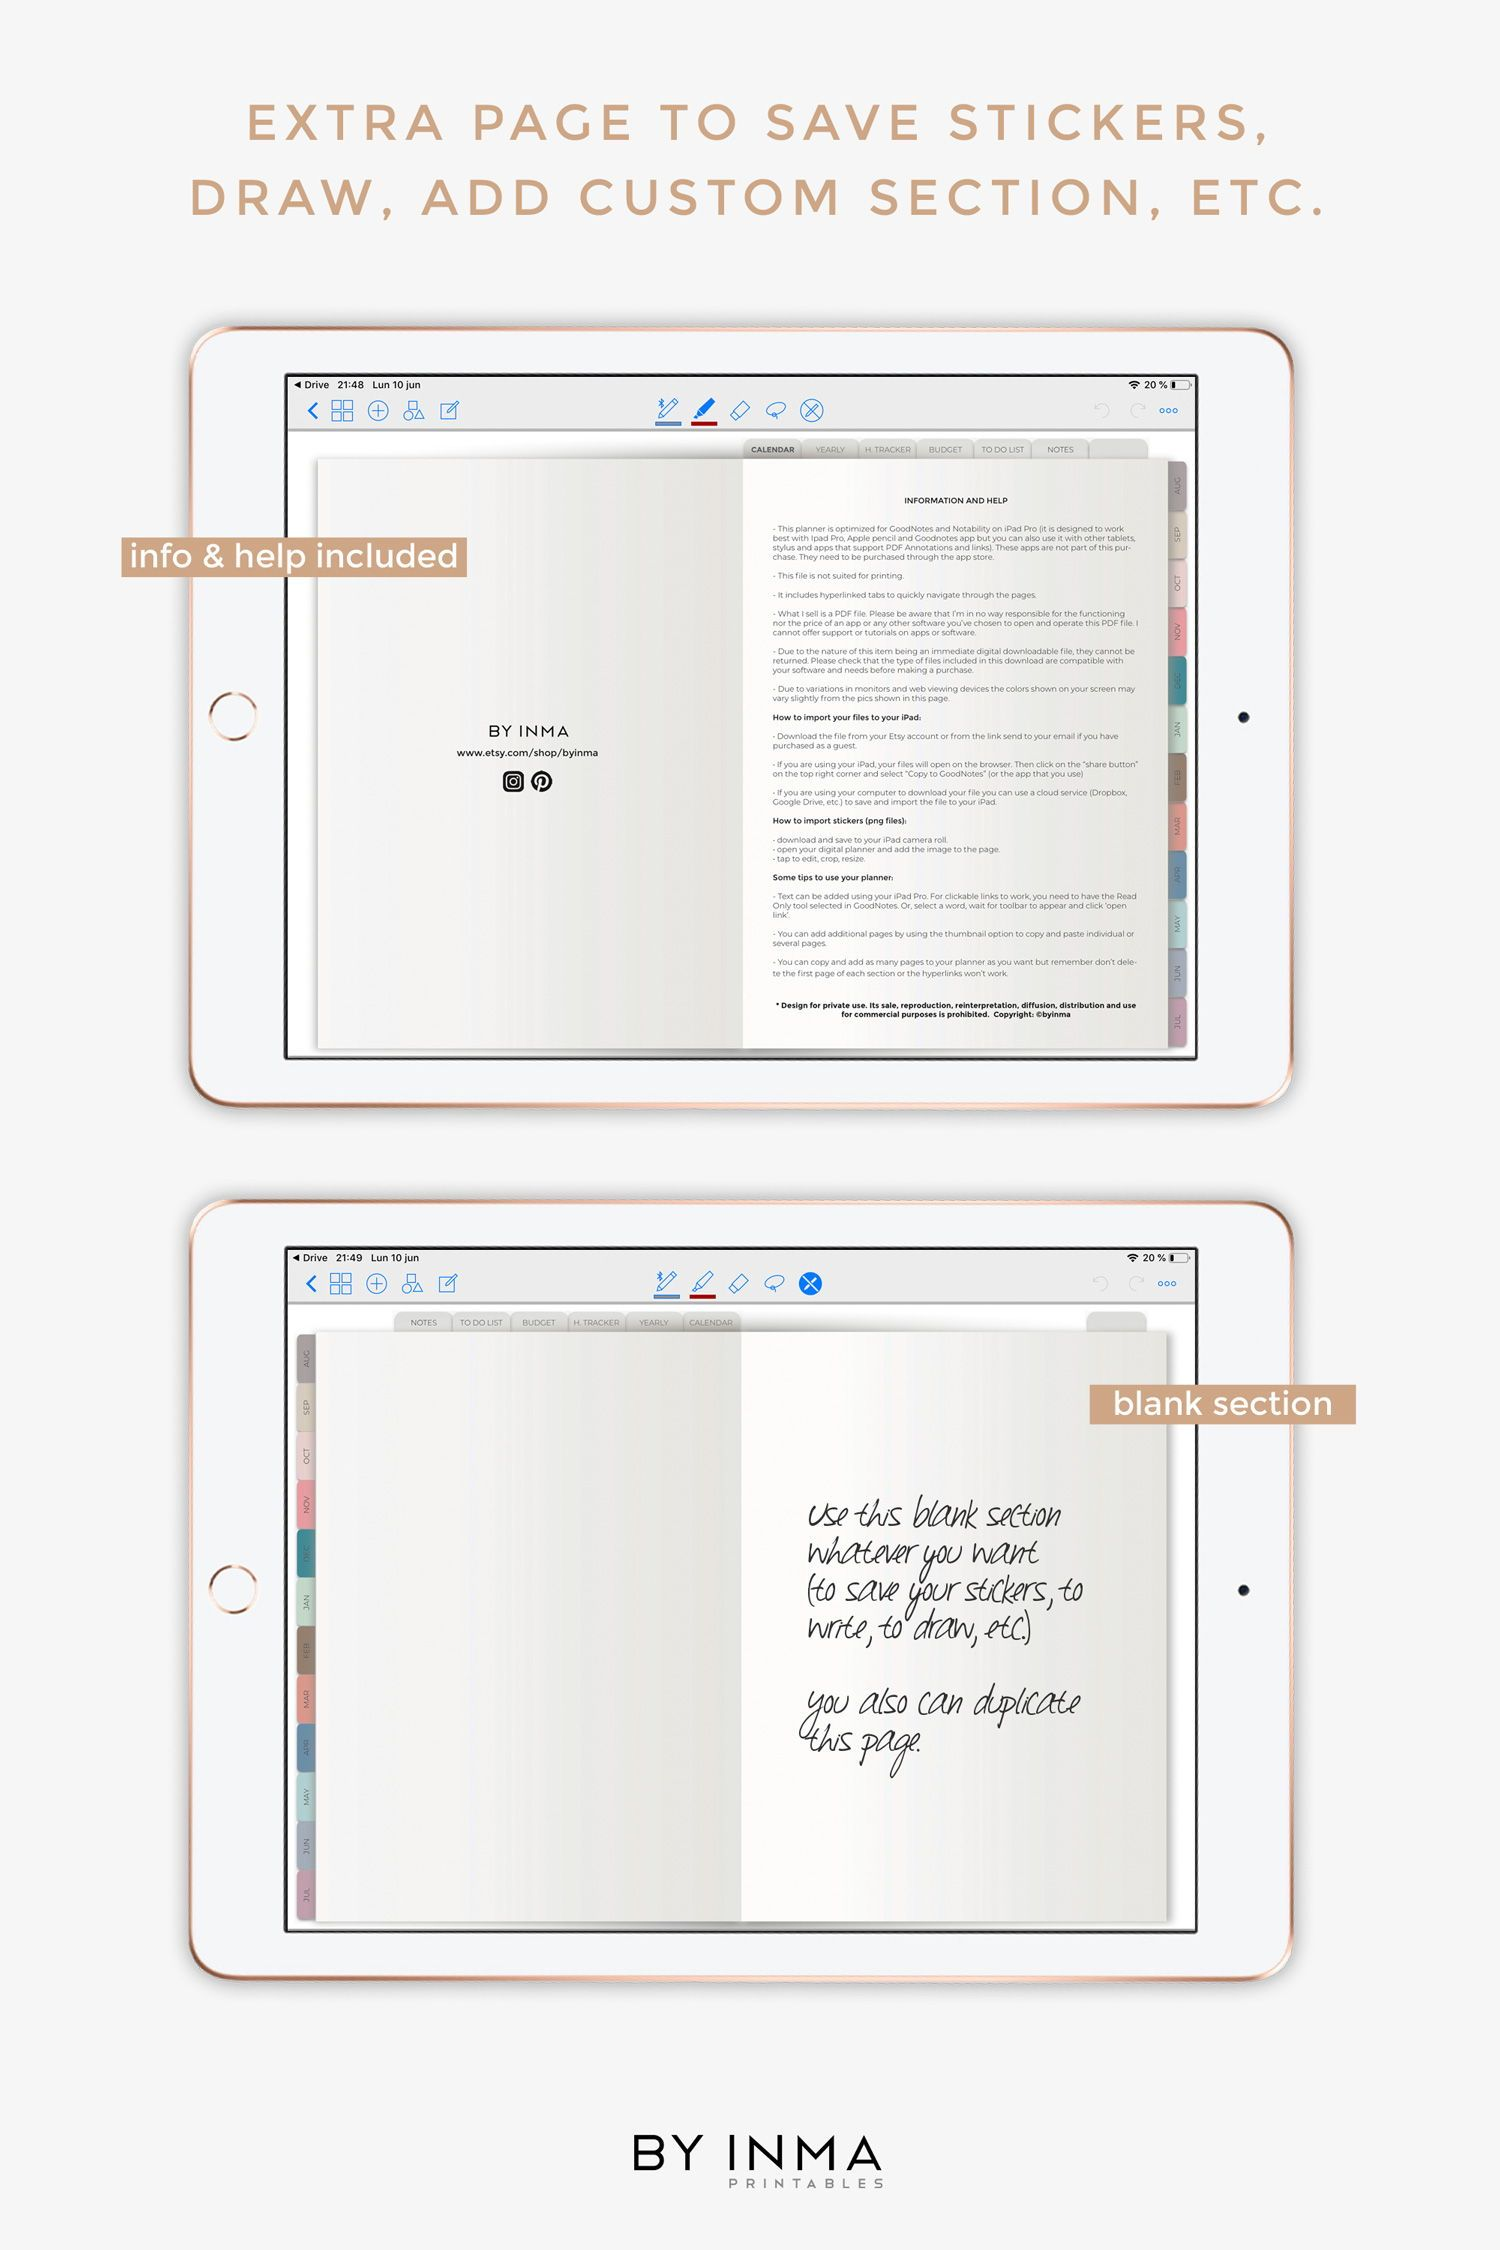 Digital Planner Goodnotes Ipad 2019 2020 Mid Year Planner With Hyperlinks Tabs Digital Stickers 2 Covers Included A Digital Planner Digital Sticker Planner